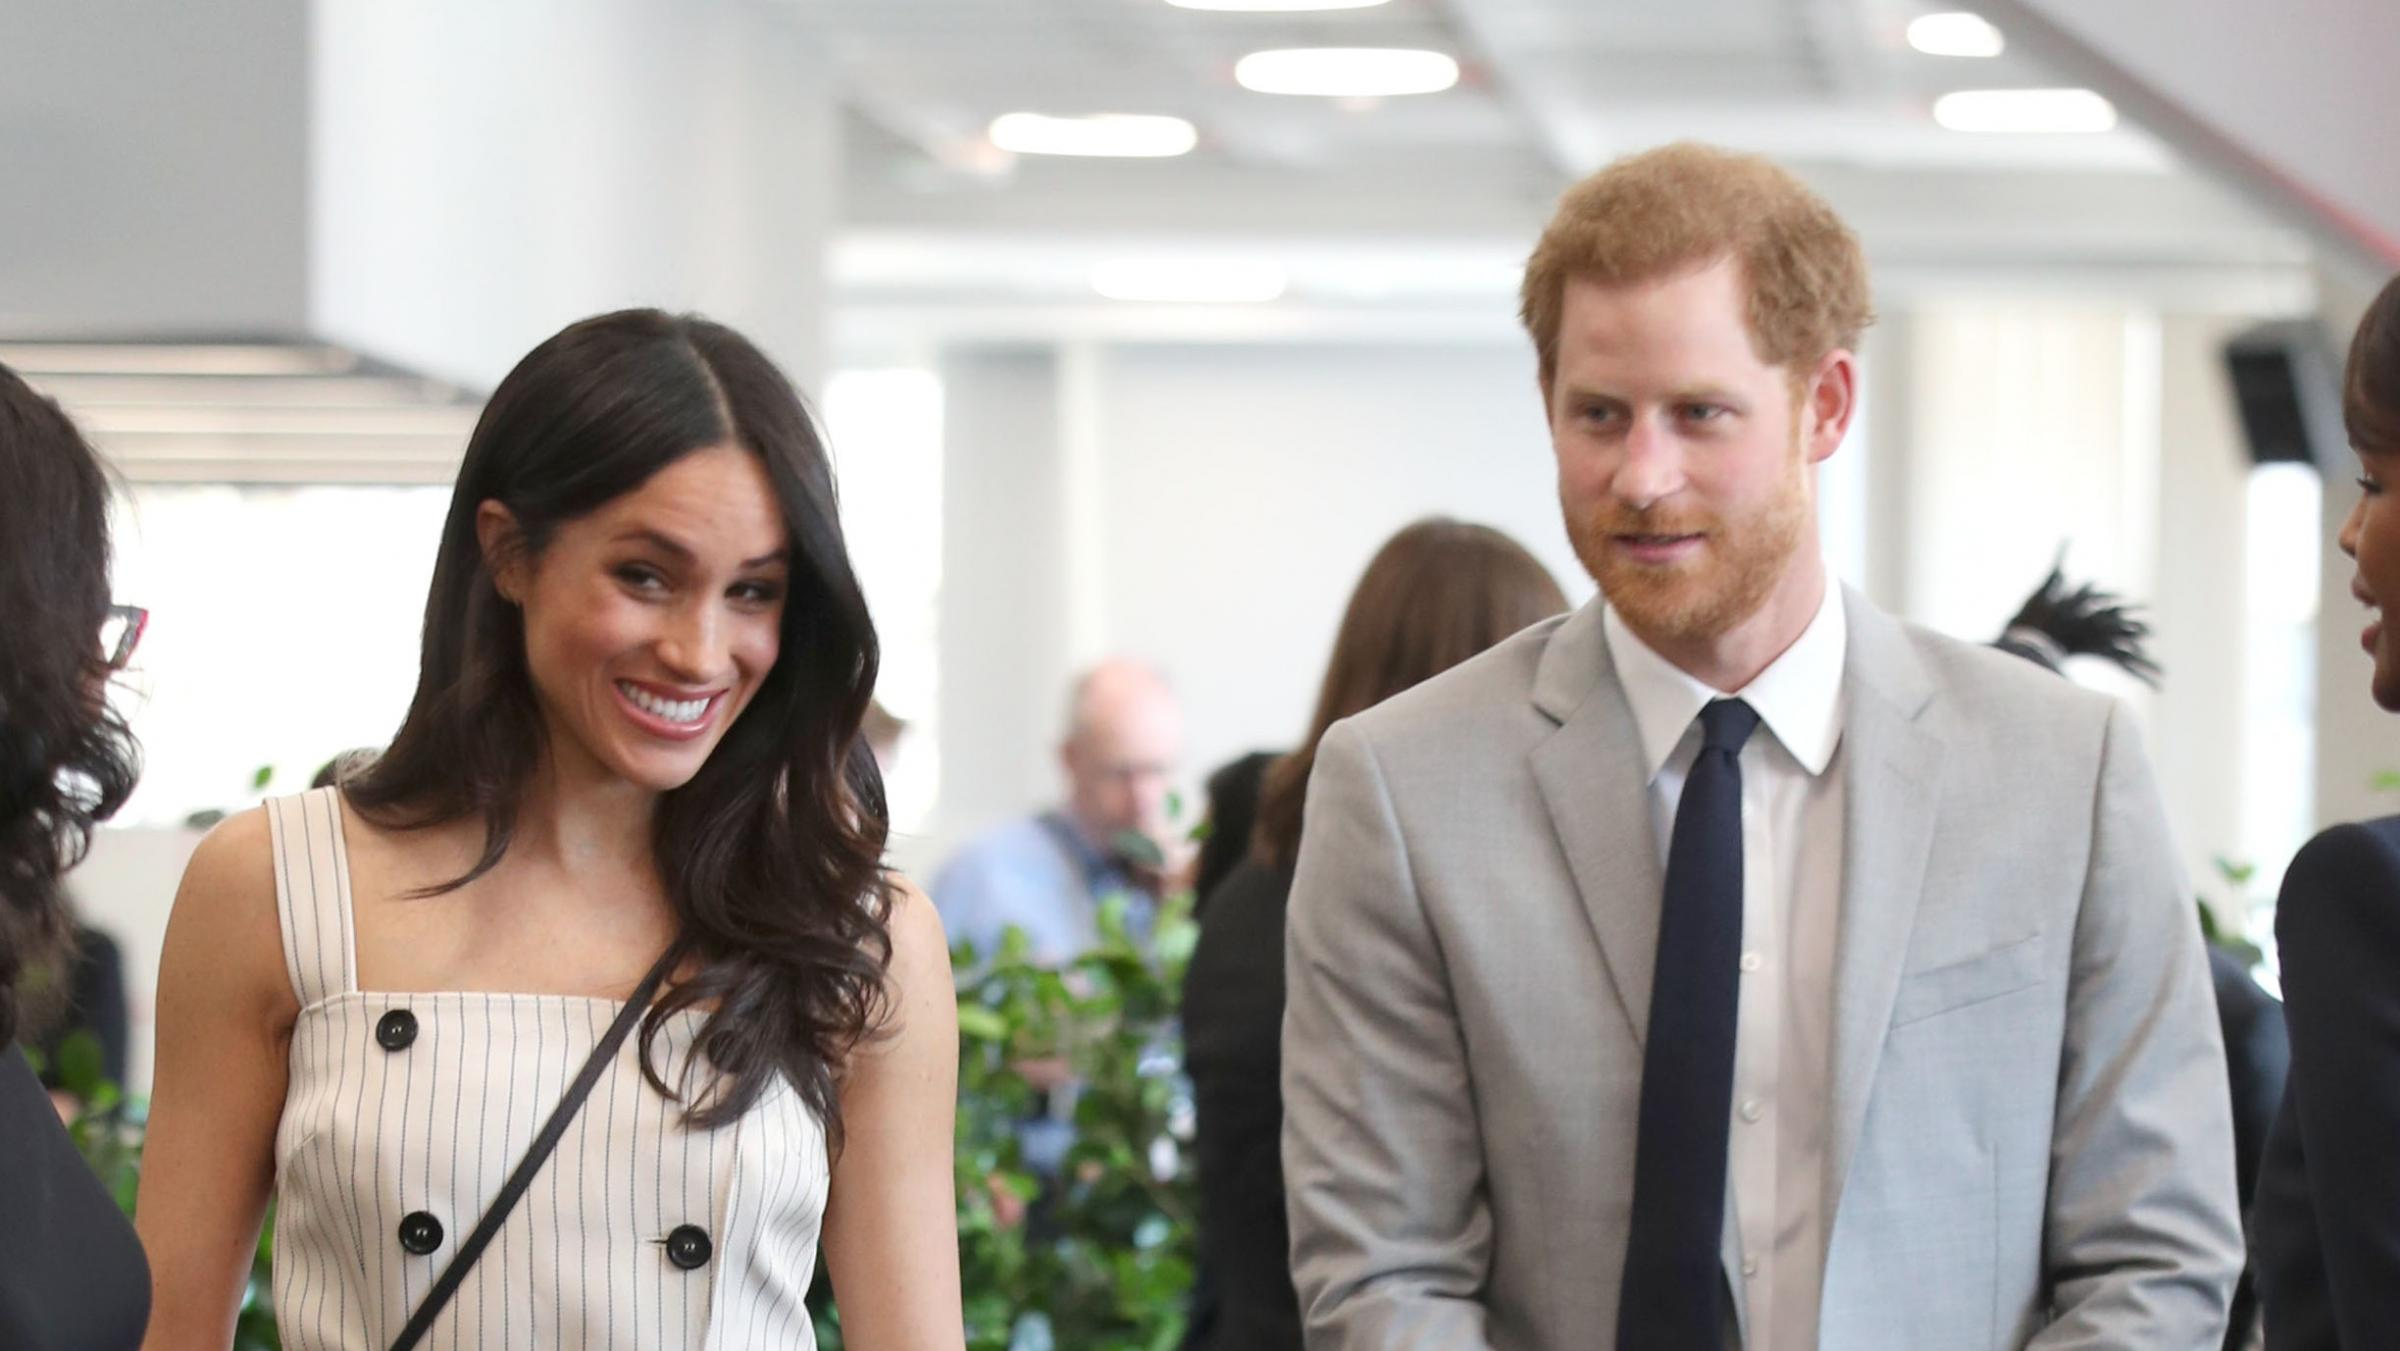 Harry and Meghan champion Women's Empowerment as royal wedding approaches